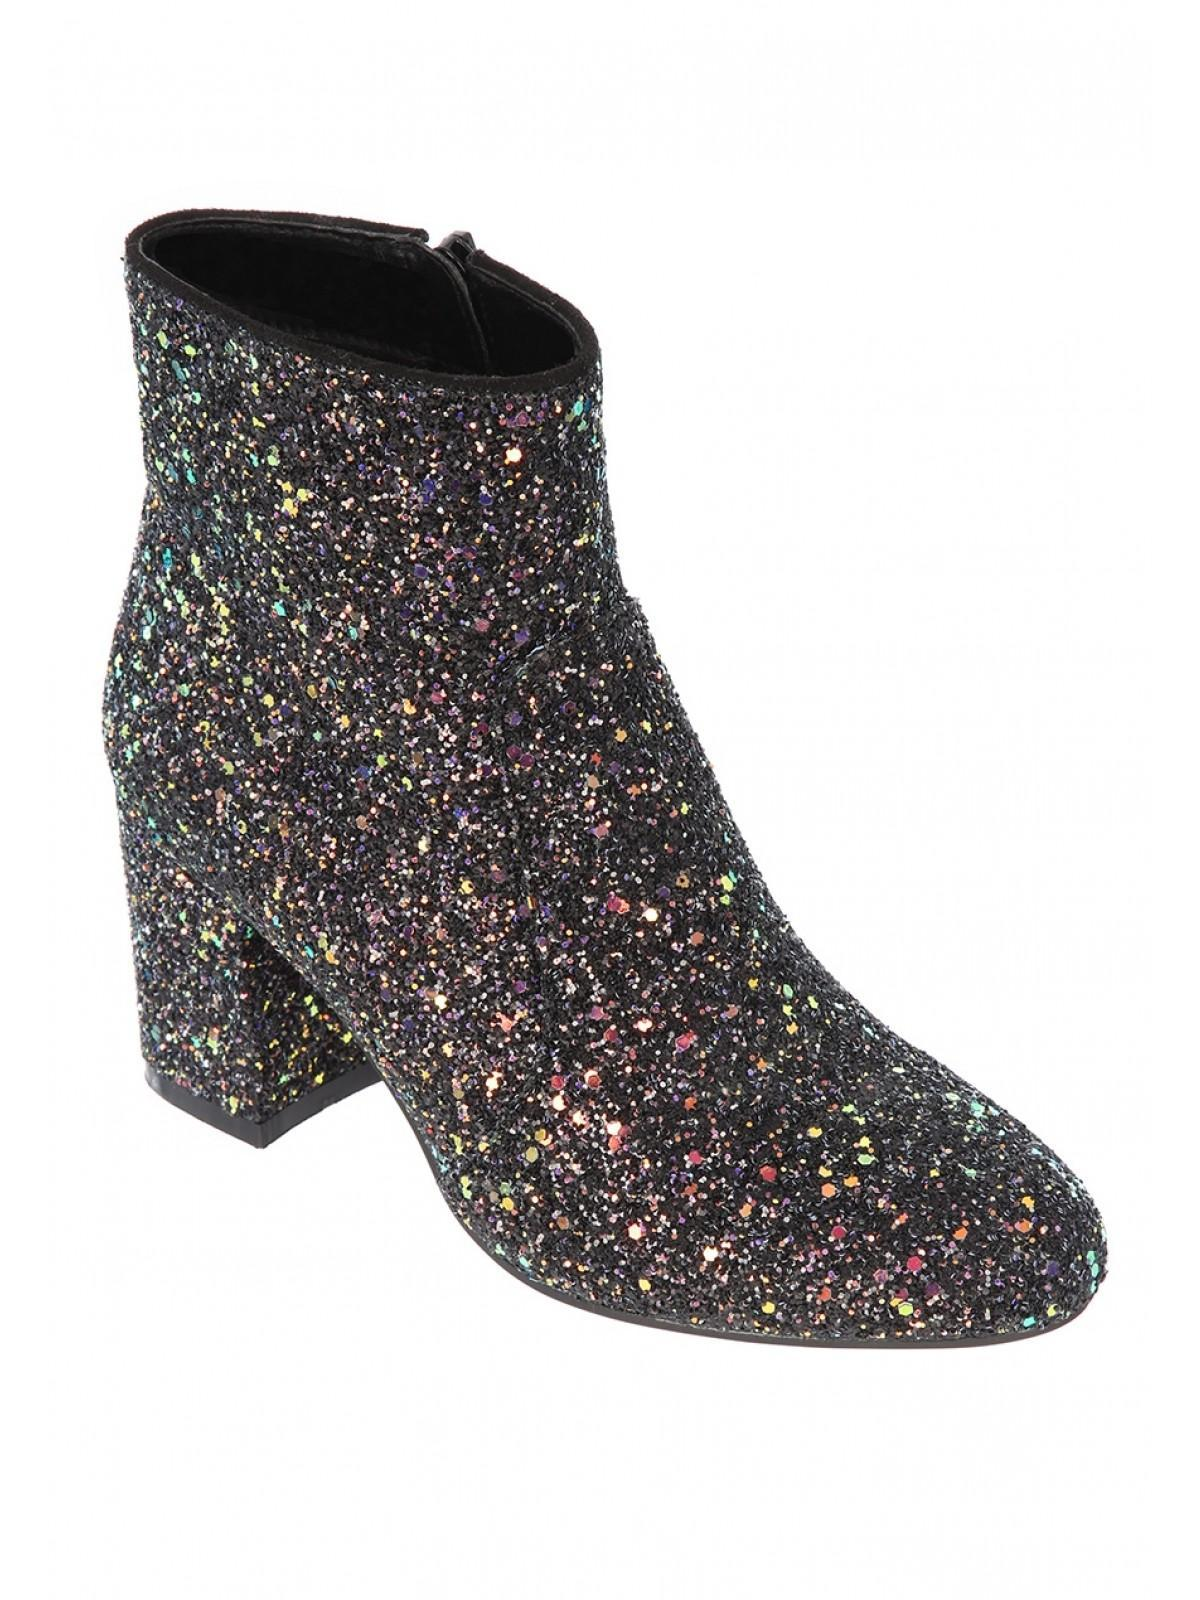 d069c011d836 Home; Womens Glitter Block Heel Ankle Boots. Back. PreviousNext